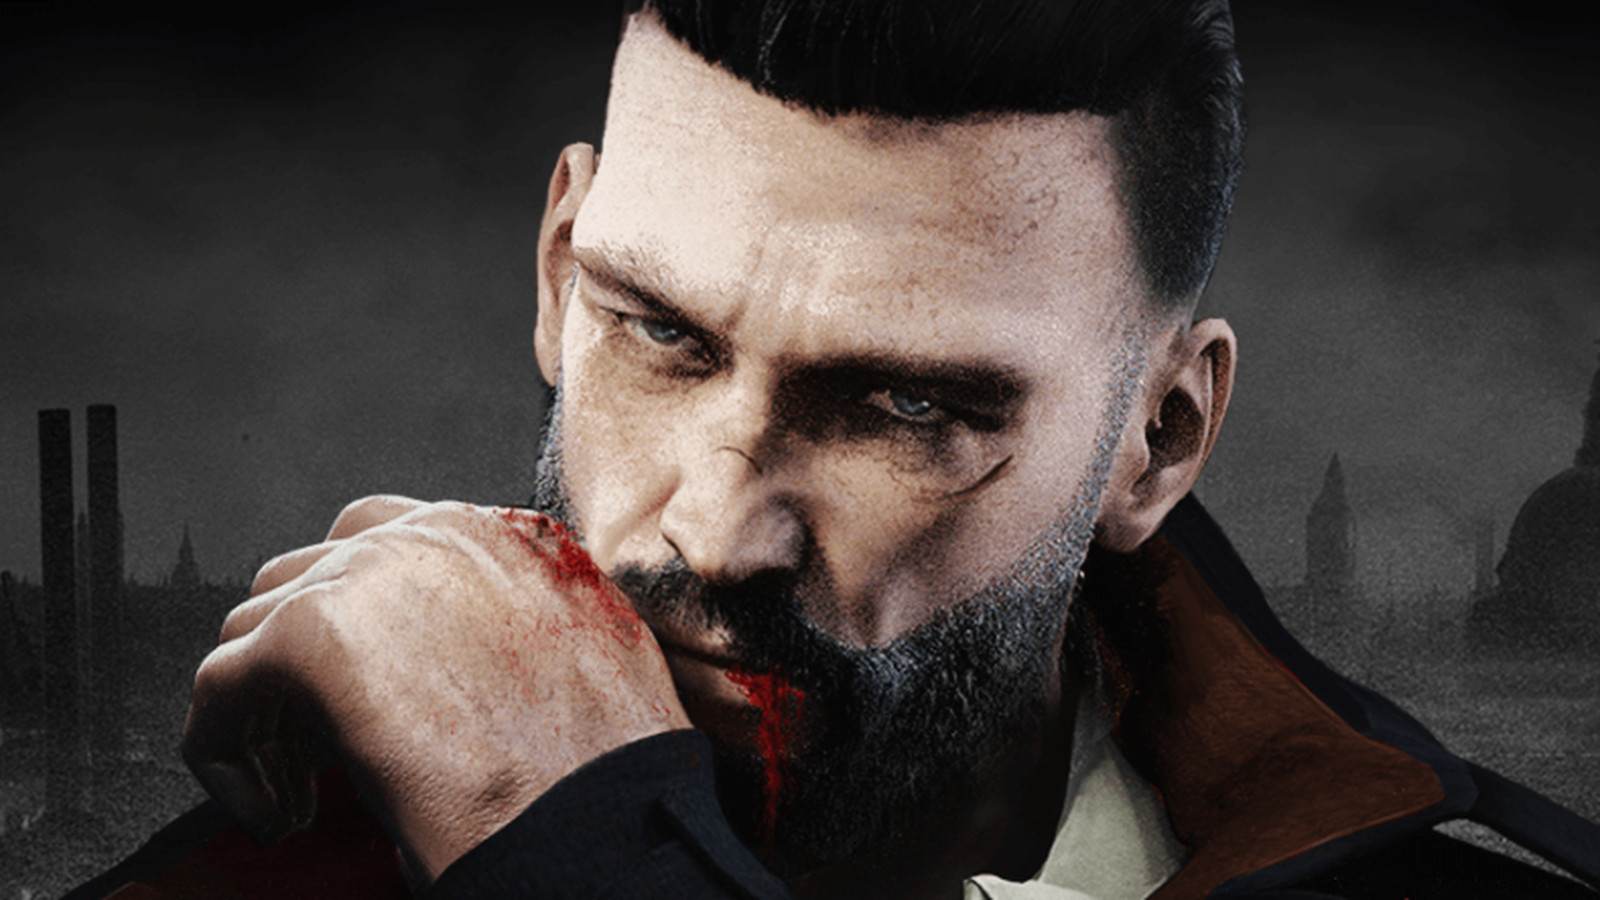 New England Fall Wallpaper Vampyr S E3 Trailer Teases This Bloody Rpg S November